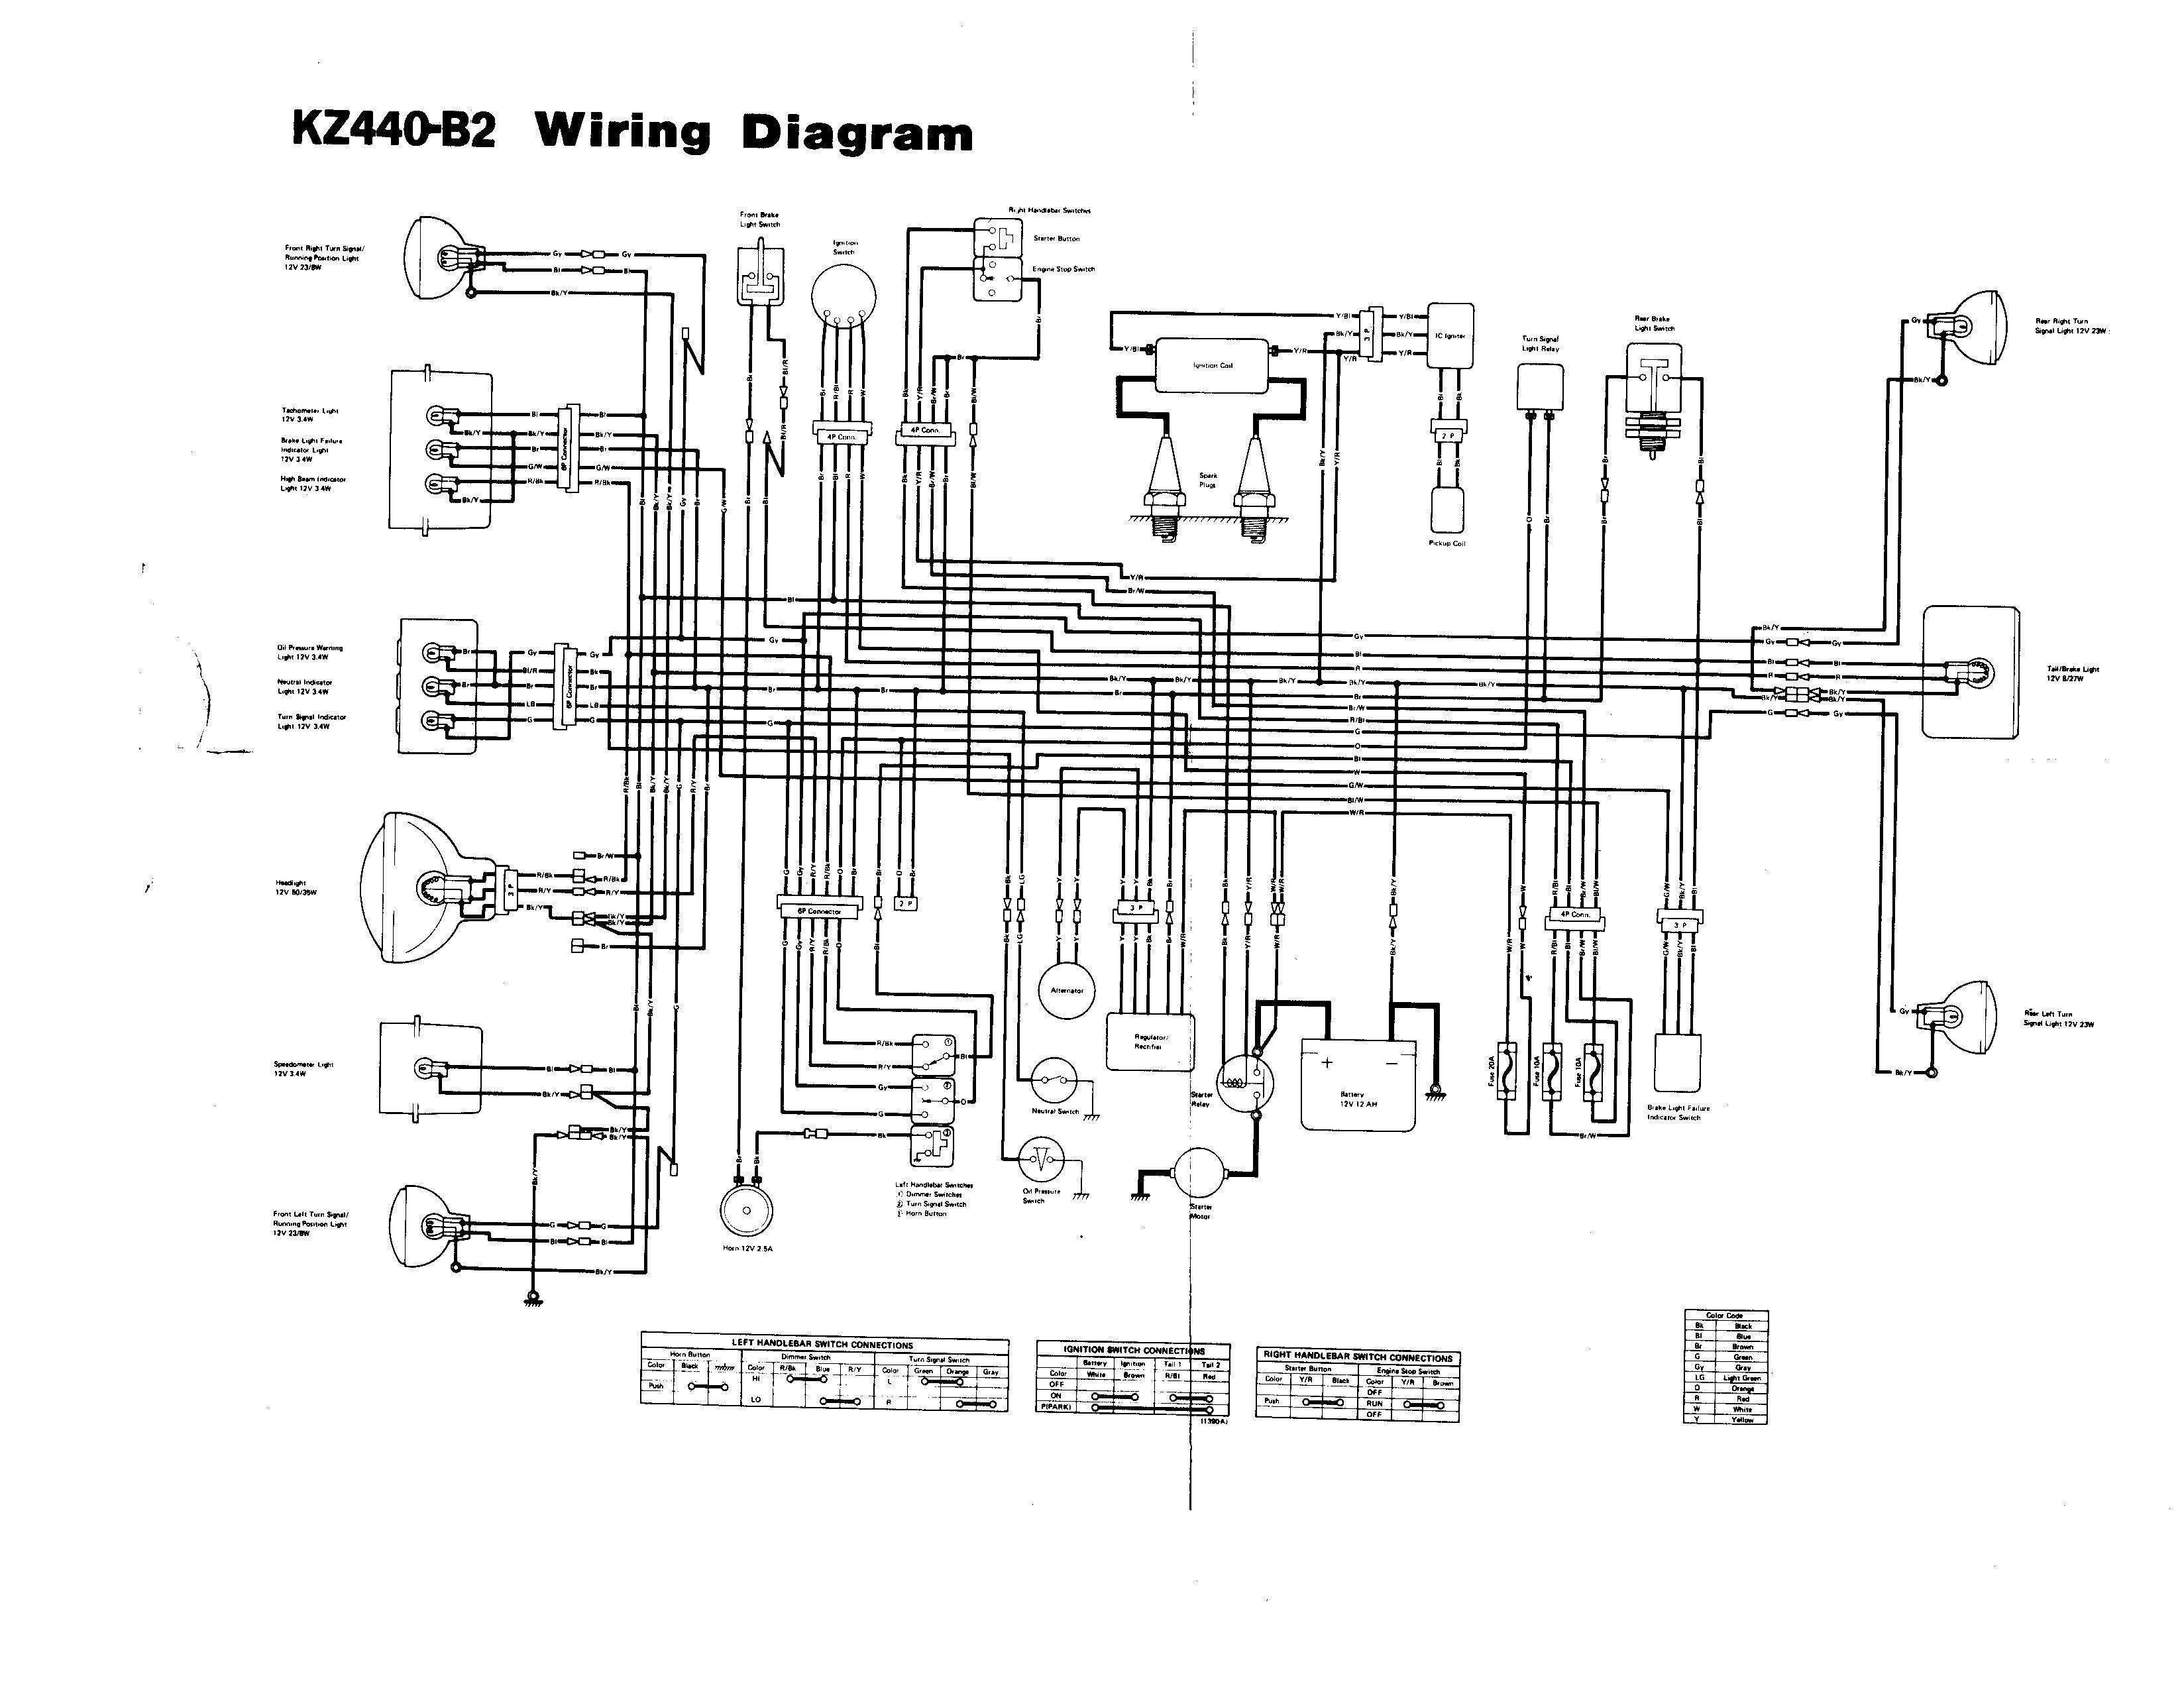 2D2C Fasco D1056 Wiring Diagram 3 Speed | Wiring LibraryWiring Library